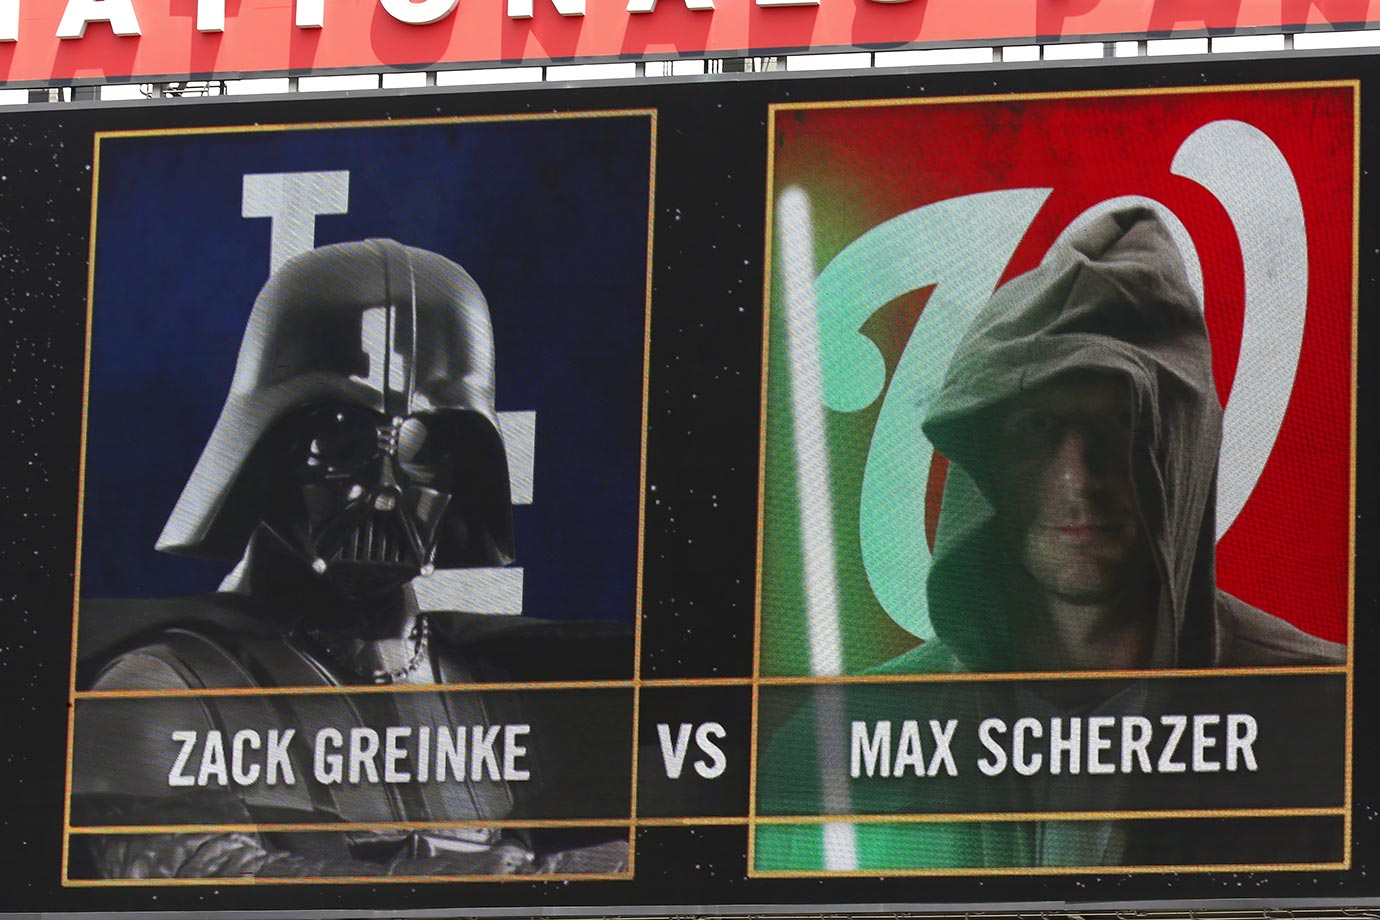 "The Washington Nationals scoreboard dispays the pitching matchup between Los Angeles Dodgers starting pitcher Zack Greinke and Nats starting pitcher Max Scherzer on ""Star Wars Day"" on July 19, 2015 at Nationals Park in Washington, D.C."